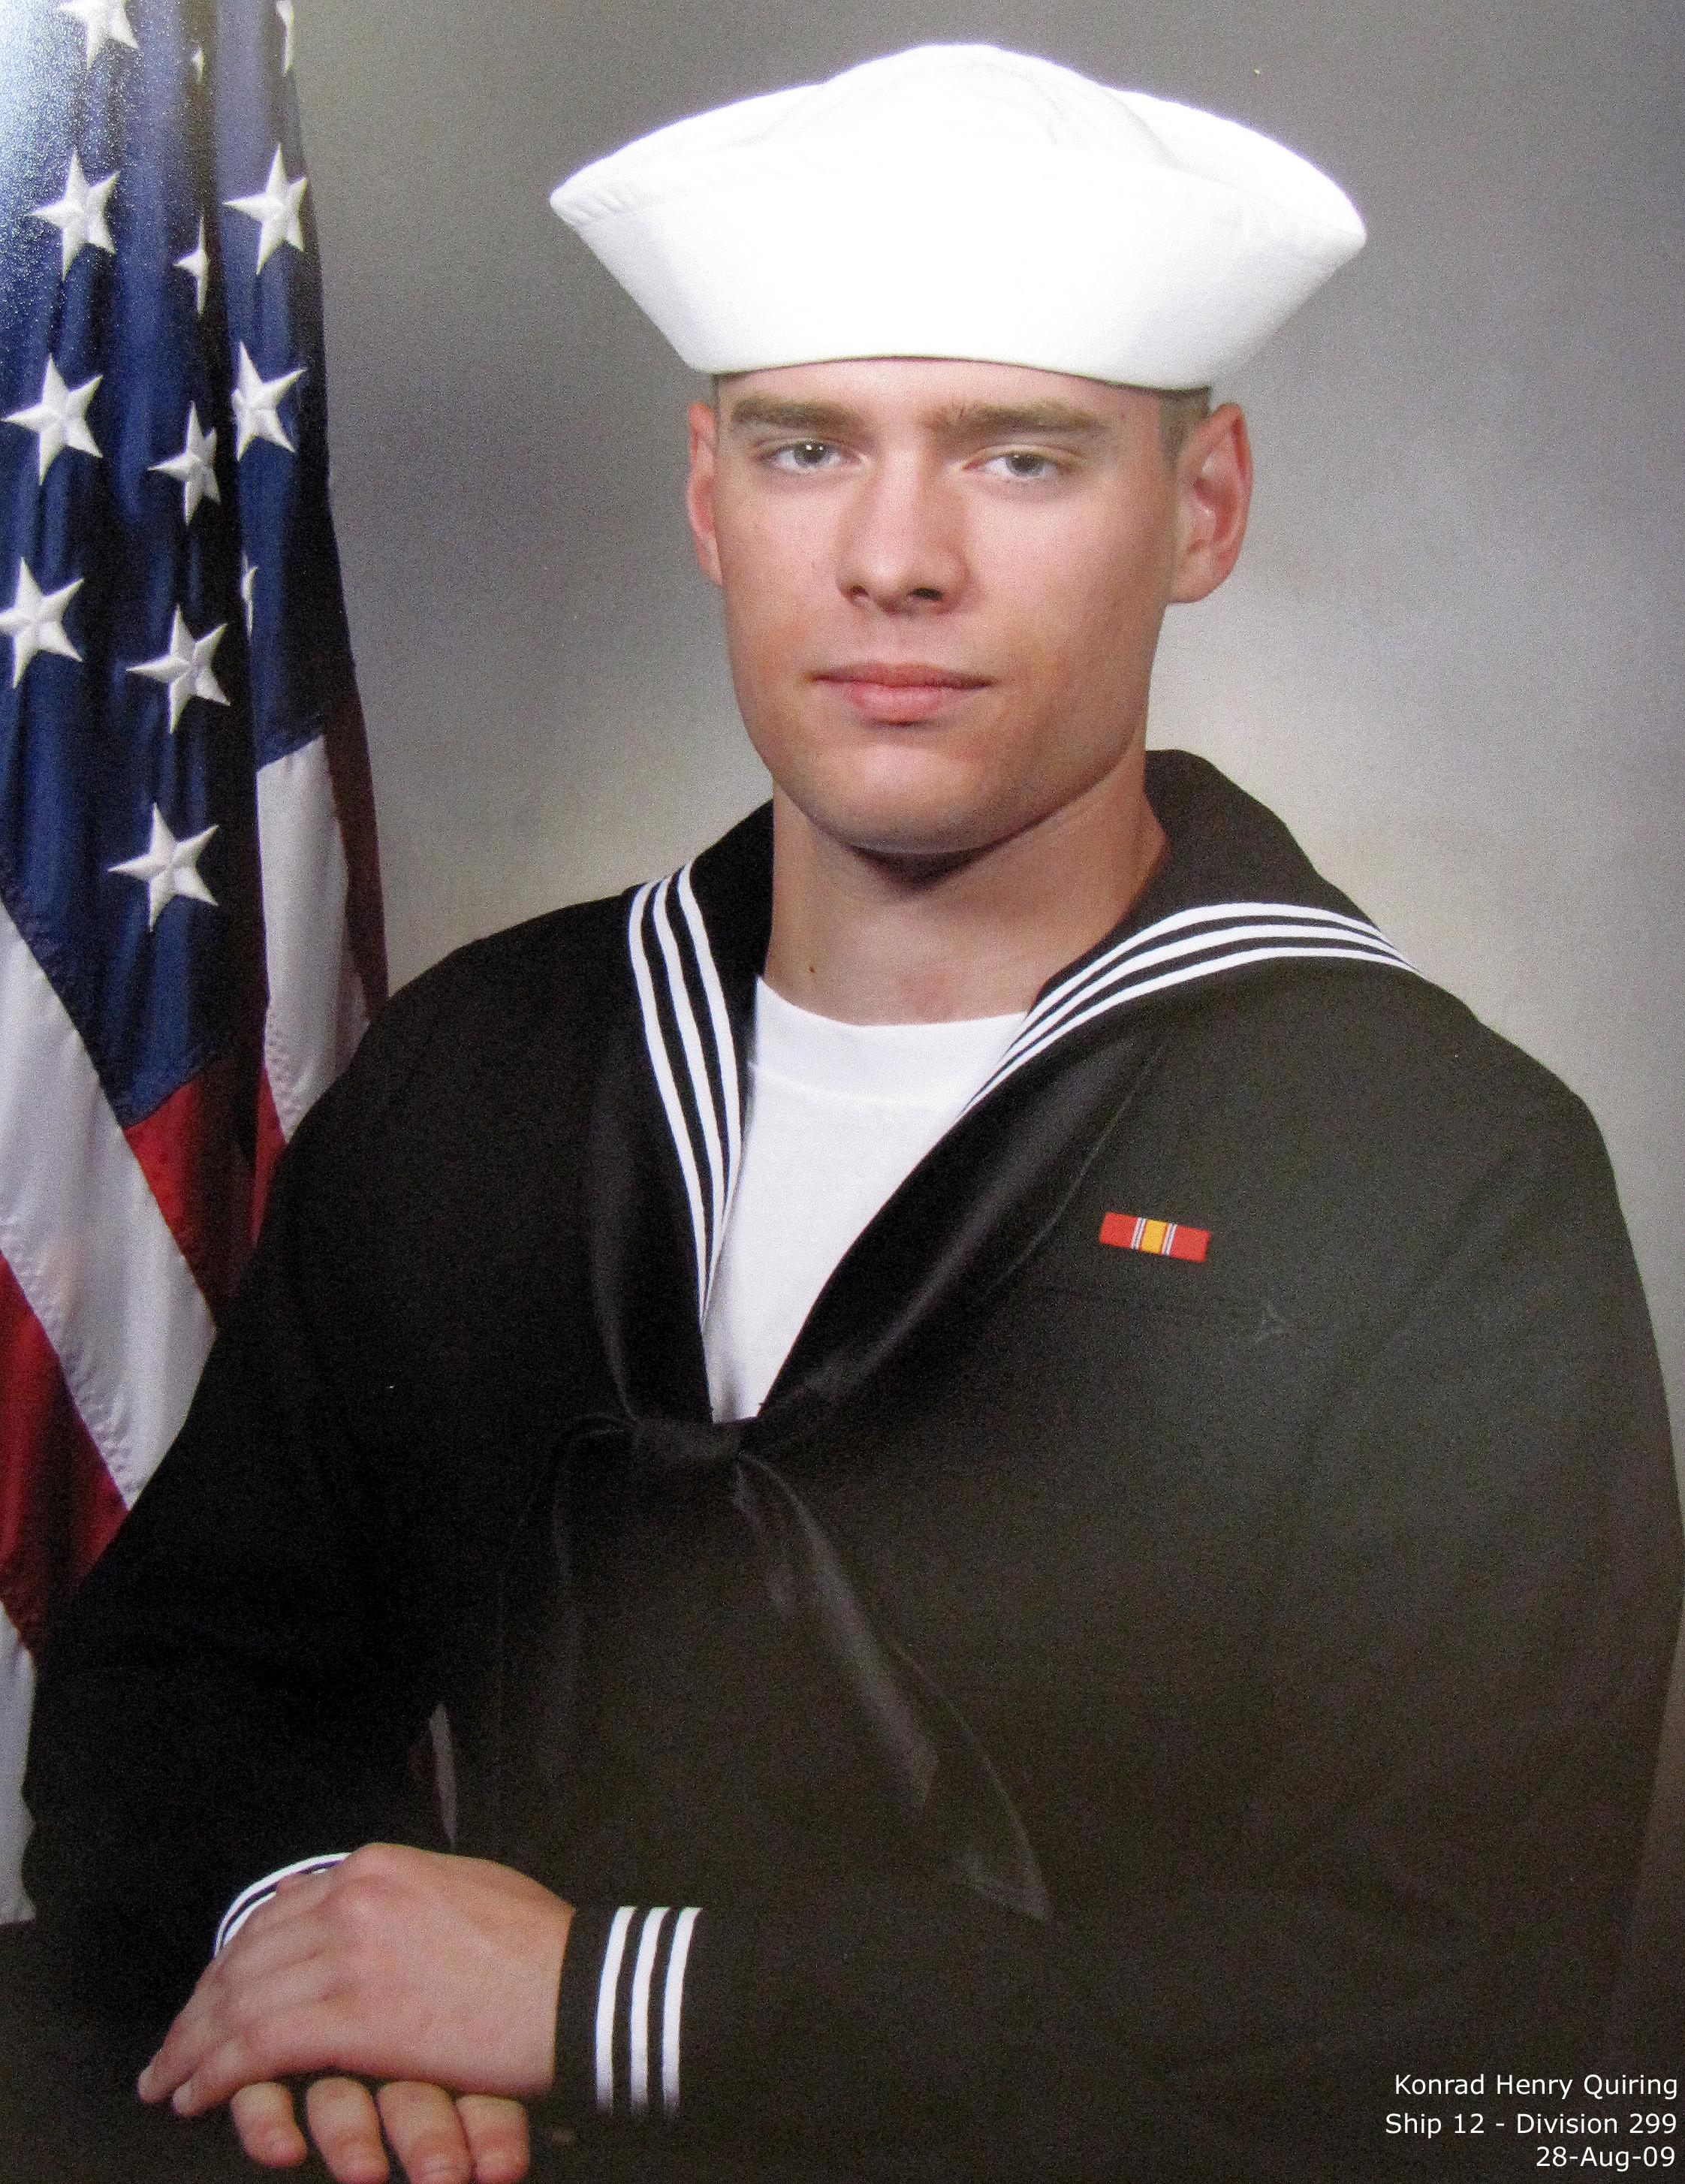 Photo: Official Boot Camp graduation photo. National Defense Service Medal. Sharpshooter designation not shown.